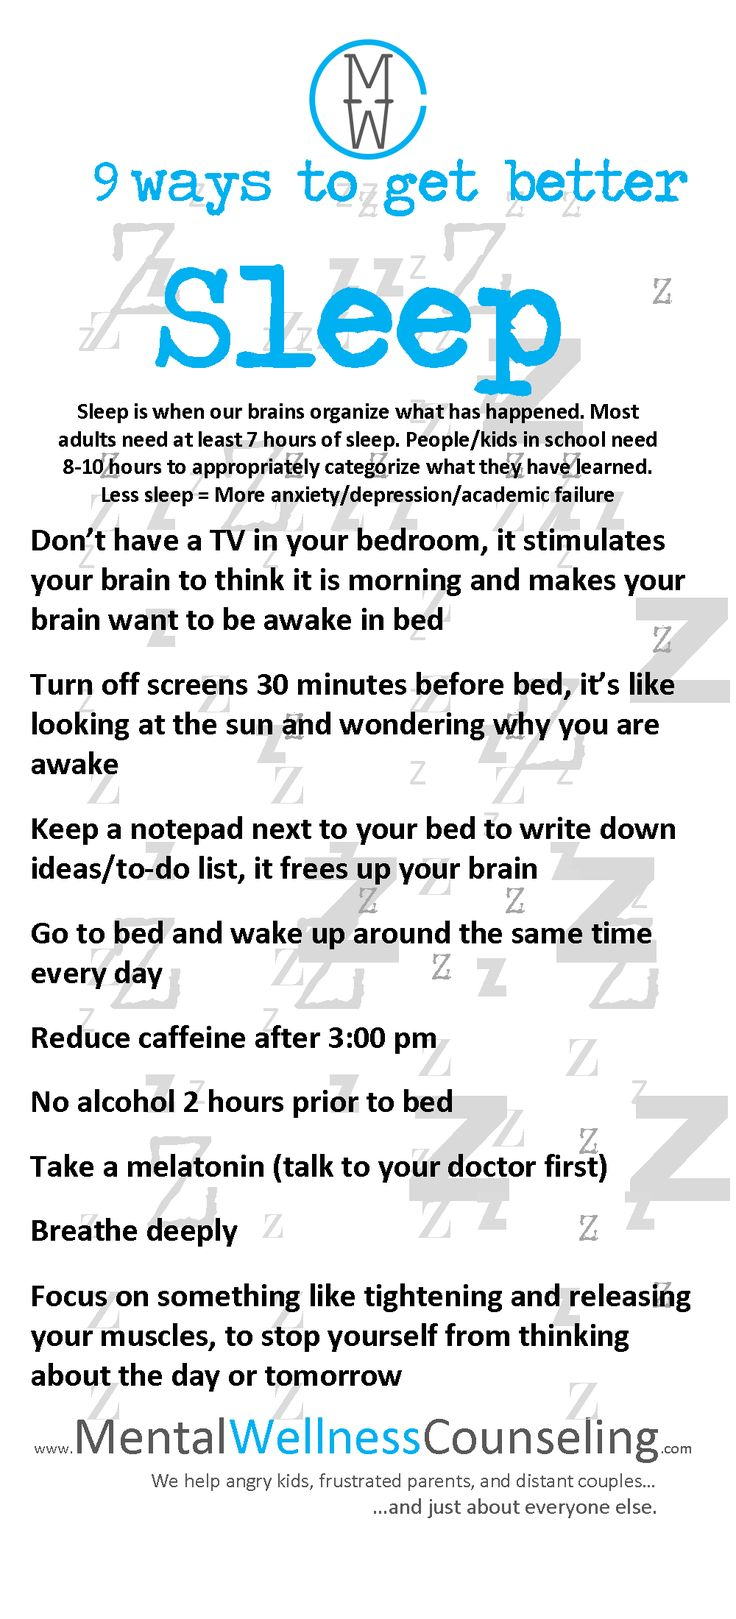 http://www.mentalwellnesscounseling.com/nine-ways-to-get-better-sleep/ Sleep is when our brains organize what has happened. Most adults need at least 7 hours of sleep. People/kids in school need 8-10 hours to appropriately categorize what they have learned.  Less sleep = More anxiety/depression/academic failure